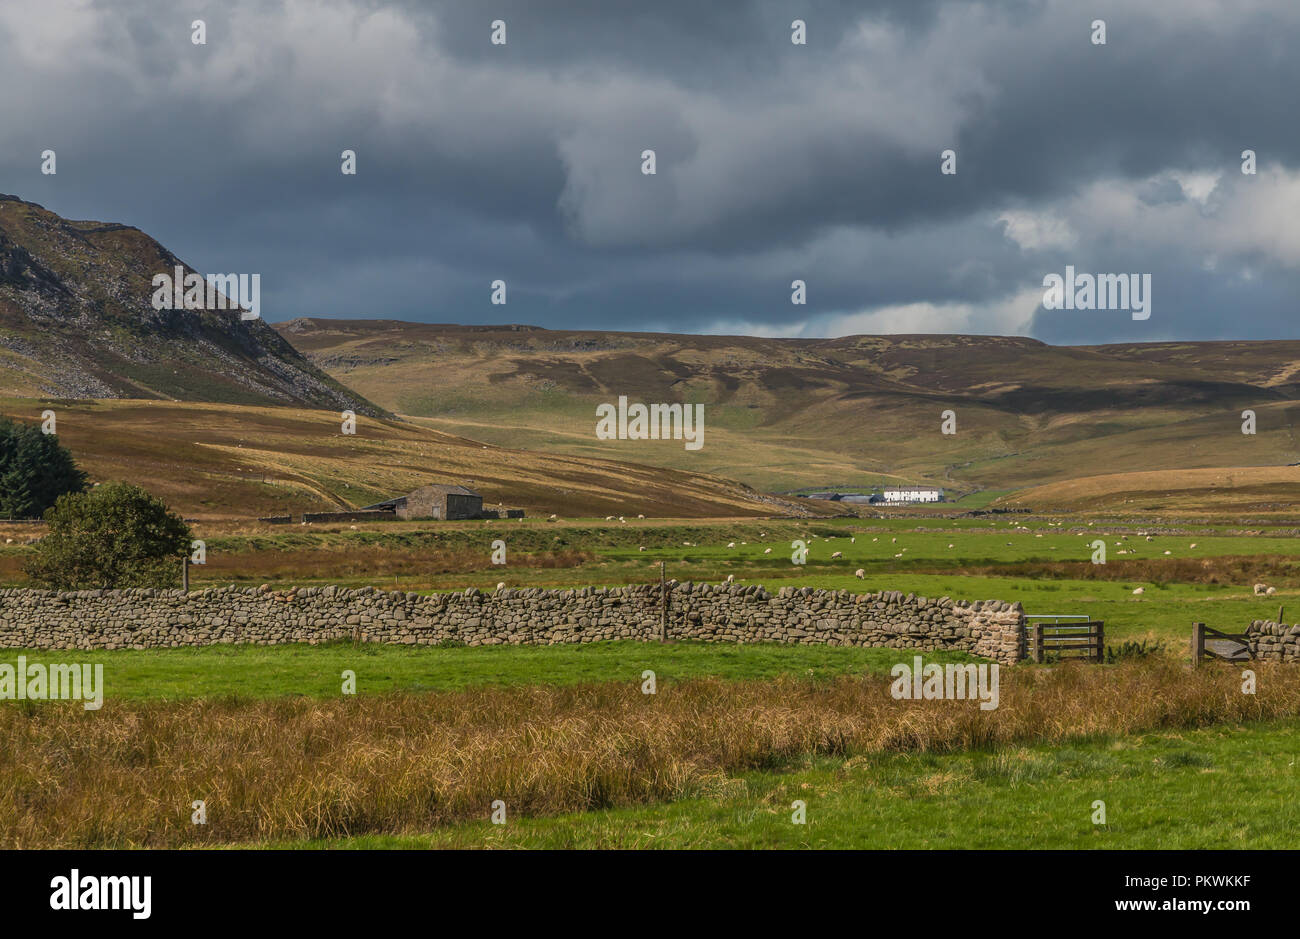 north-pennines-aonb-landscape-cronkley-scar-and-widdybank-farm-PKWKKF.jpg